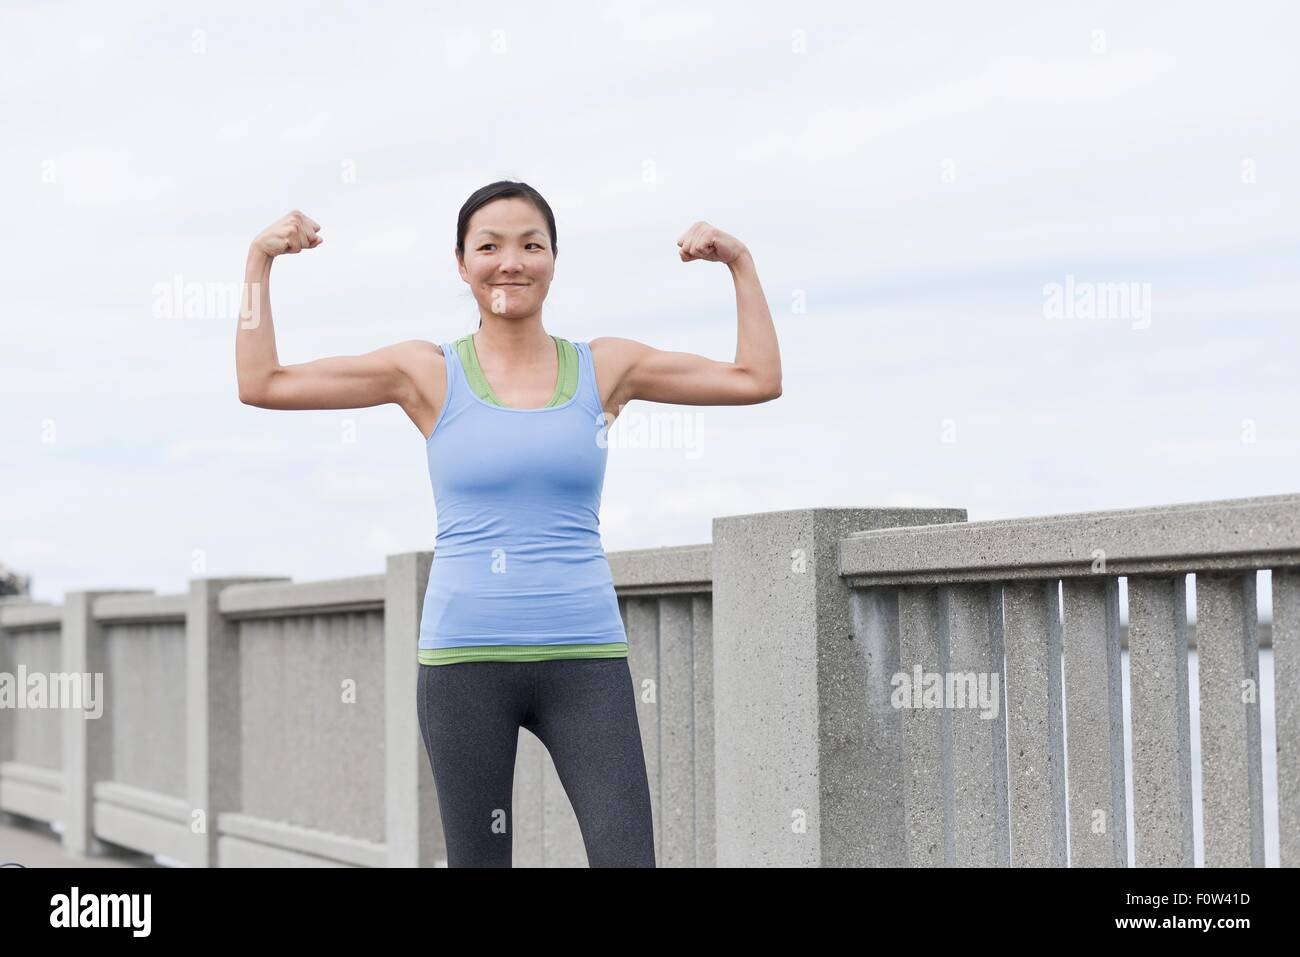 Female runner flexing muscles on bridge, San Francisco, California - Stock Image